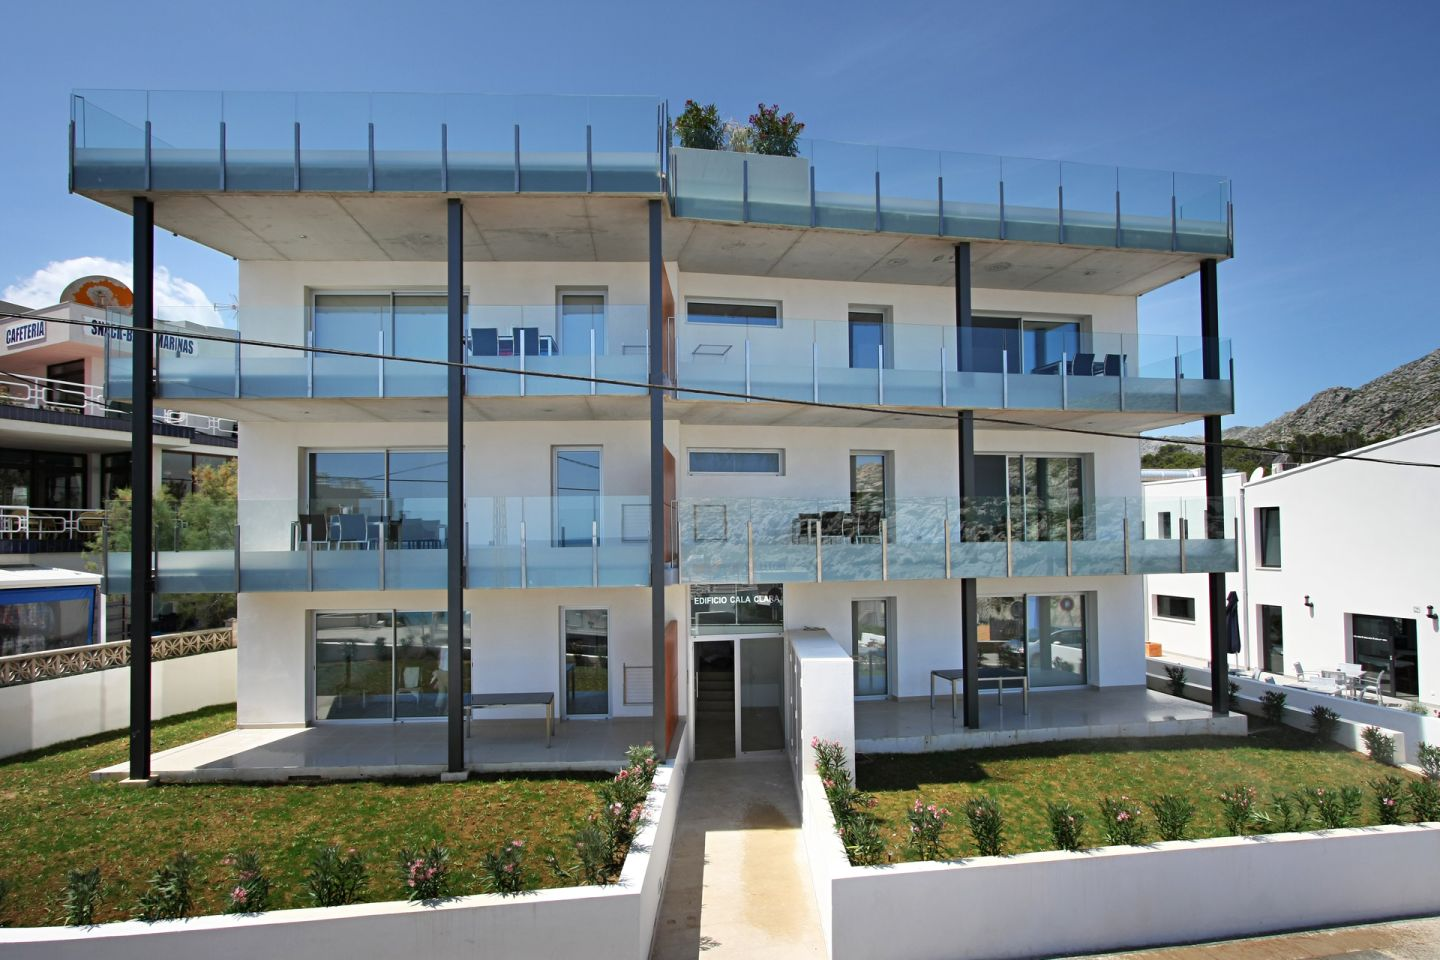 2 Bed Building for sale in Cala San Vicente 3